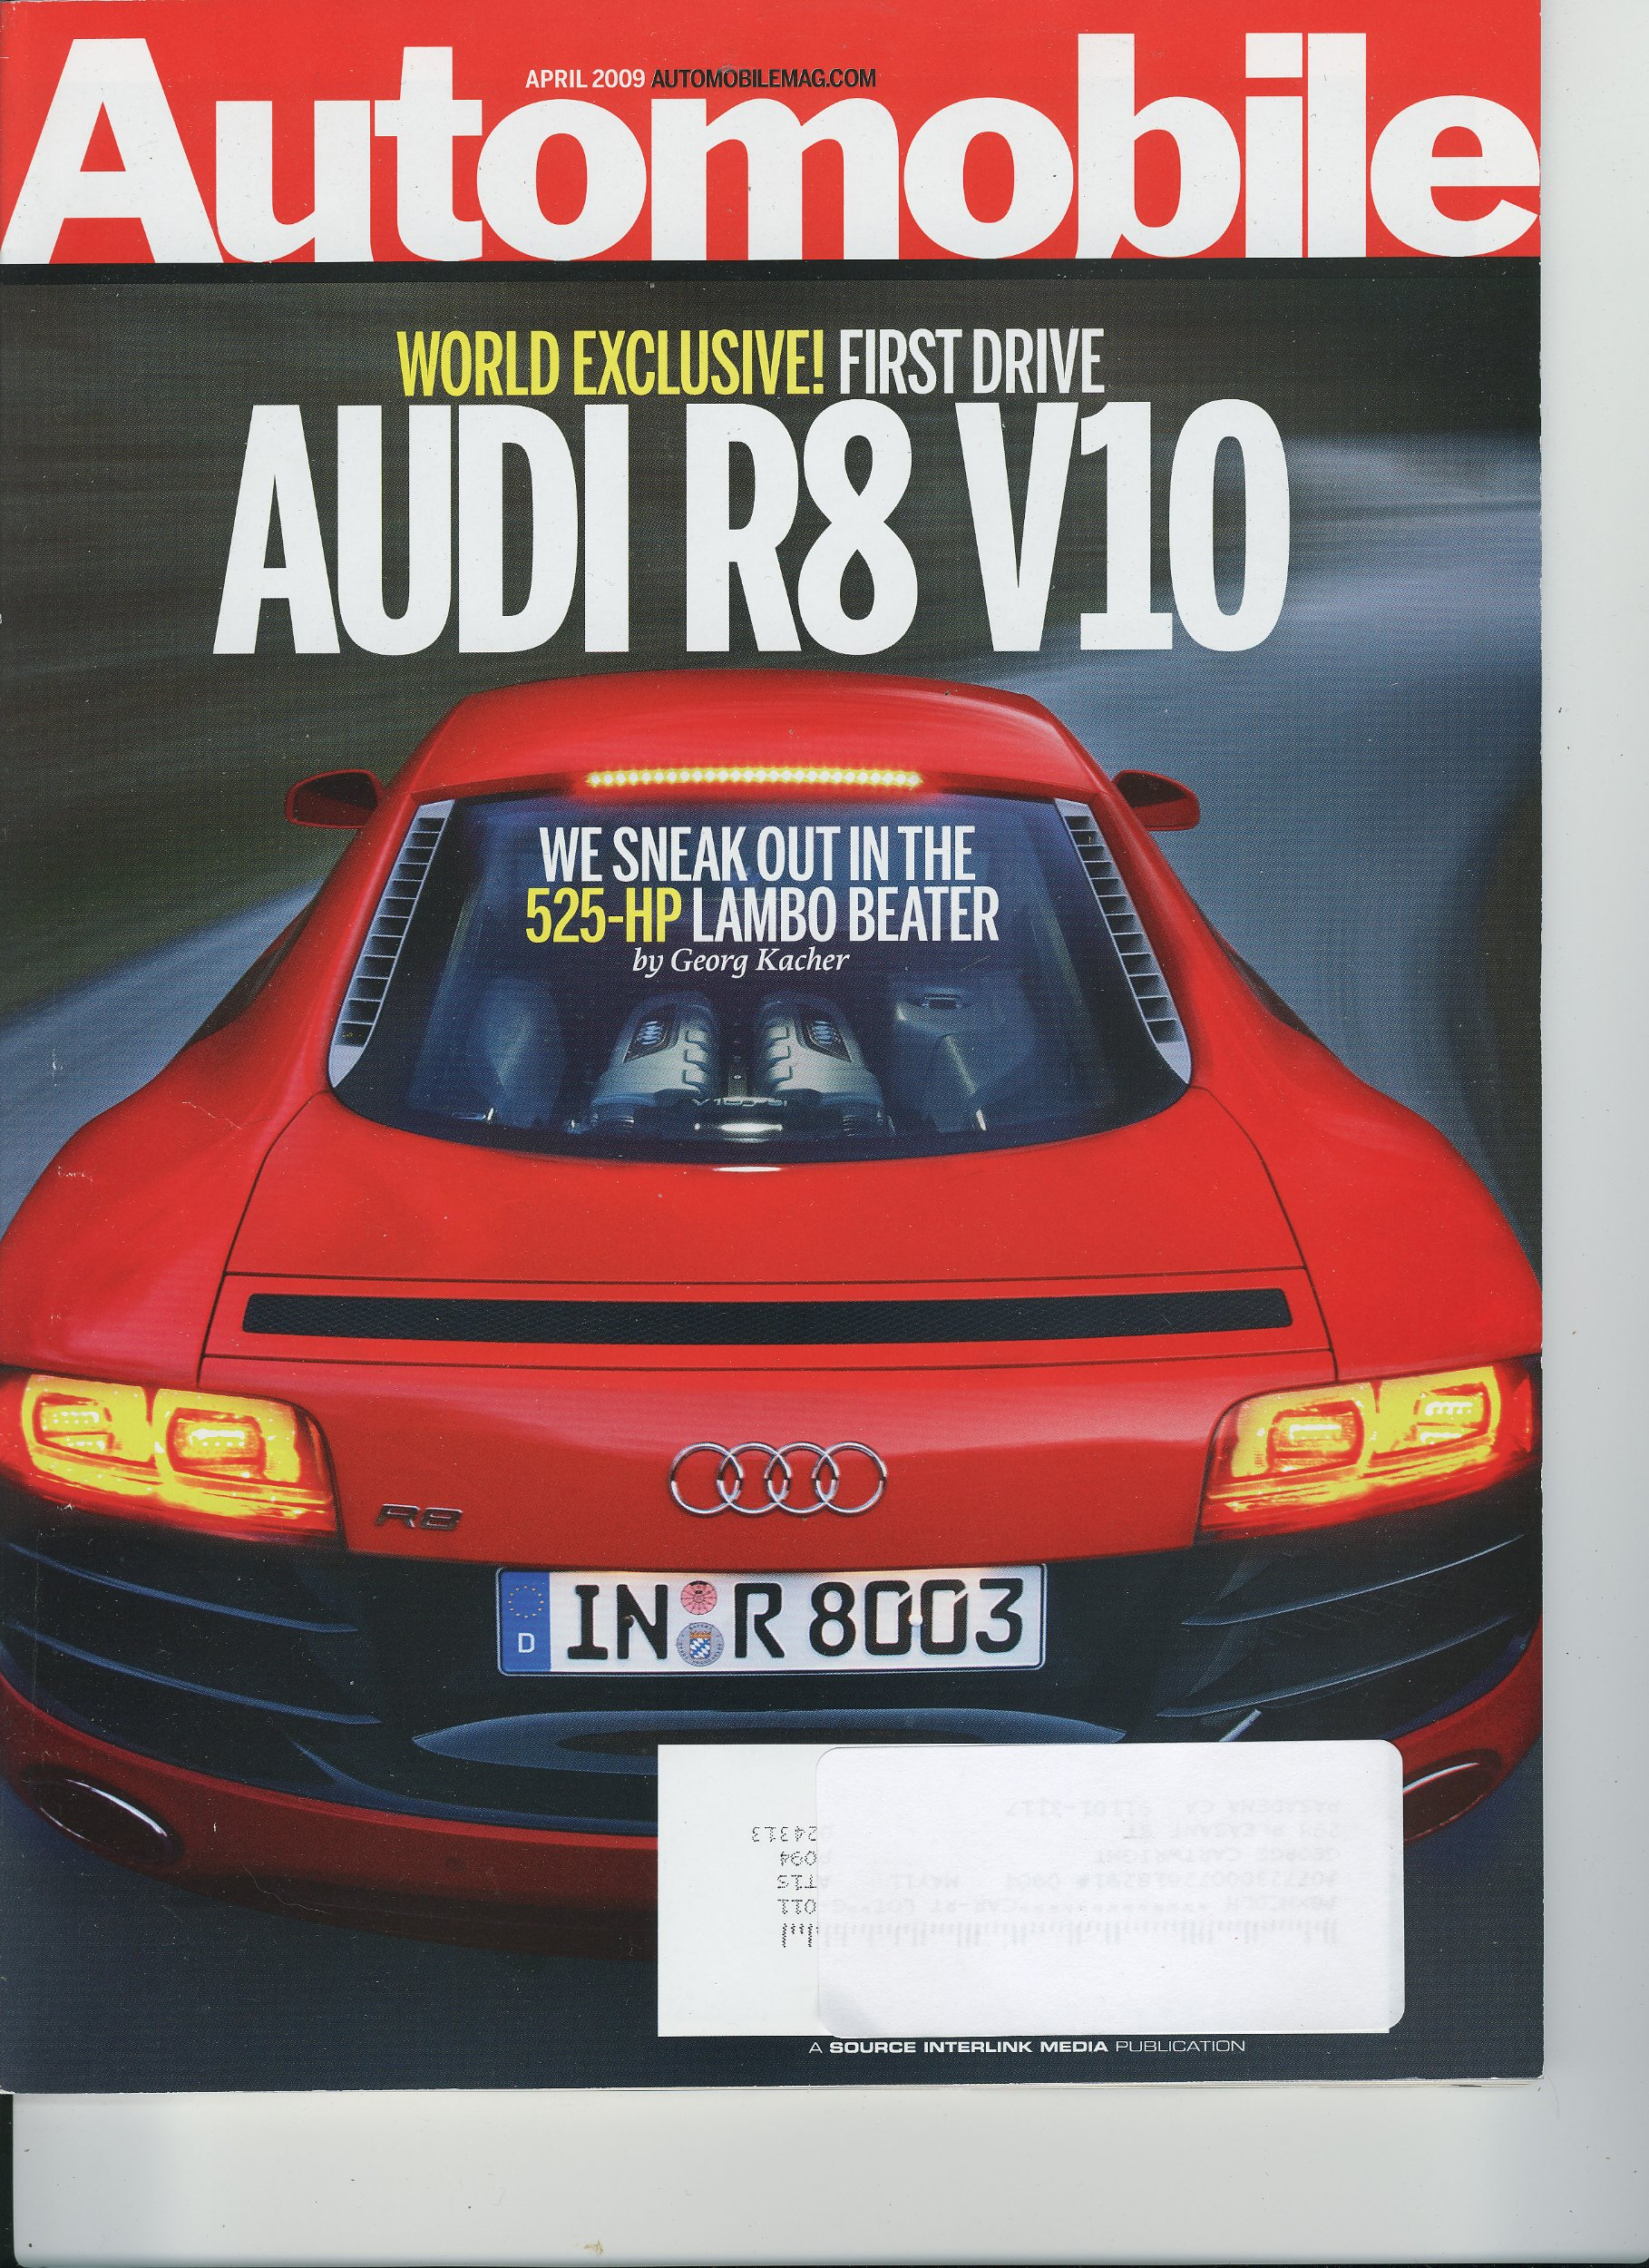 Download Automobile Magazine, April 2009 - Audi R8 V10, Audi TTS, Mini Cooper S Conv. PDF